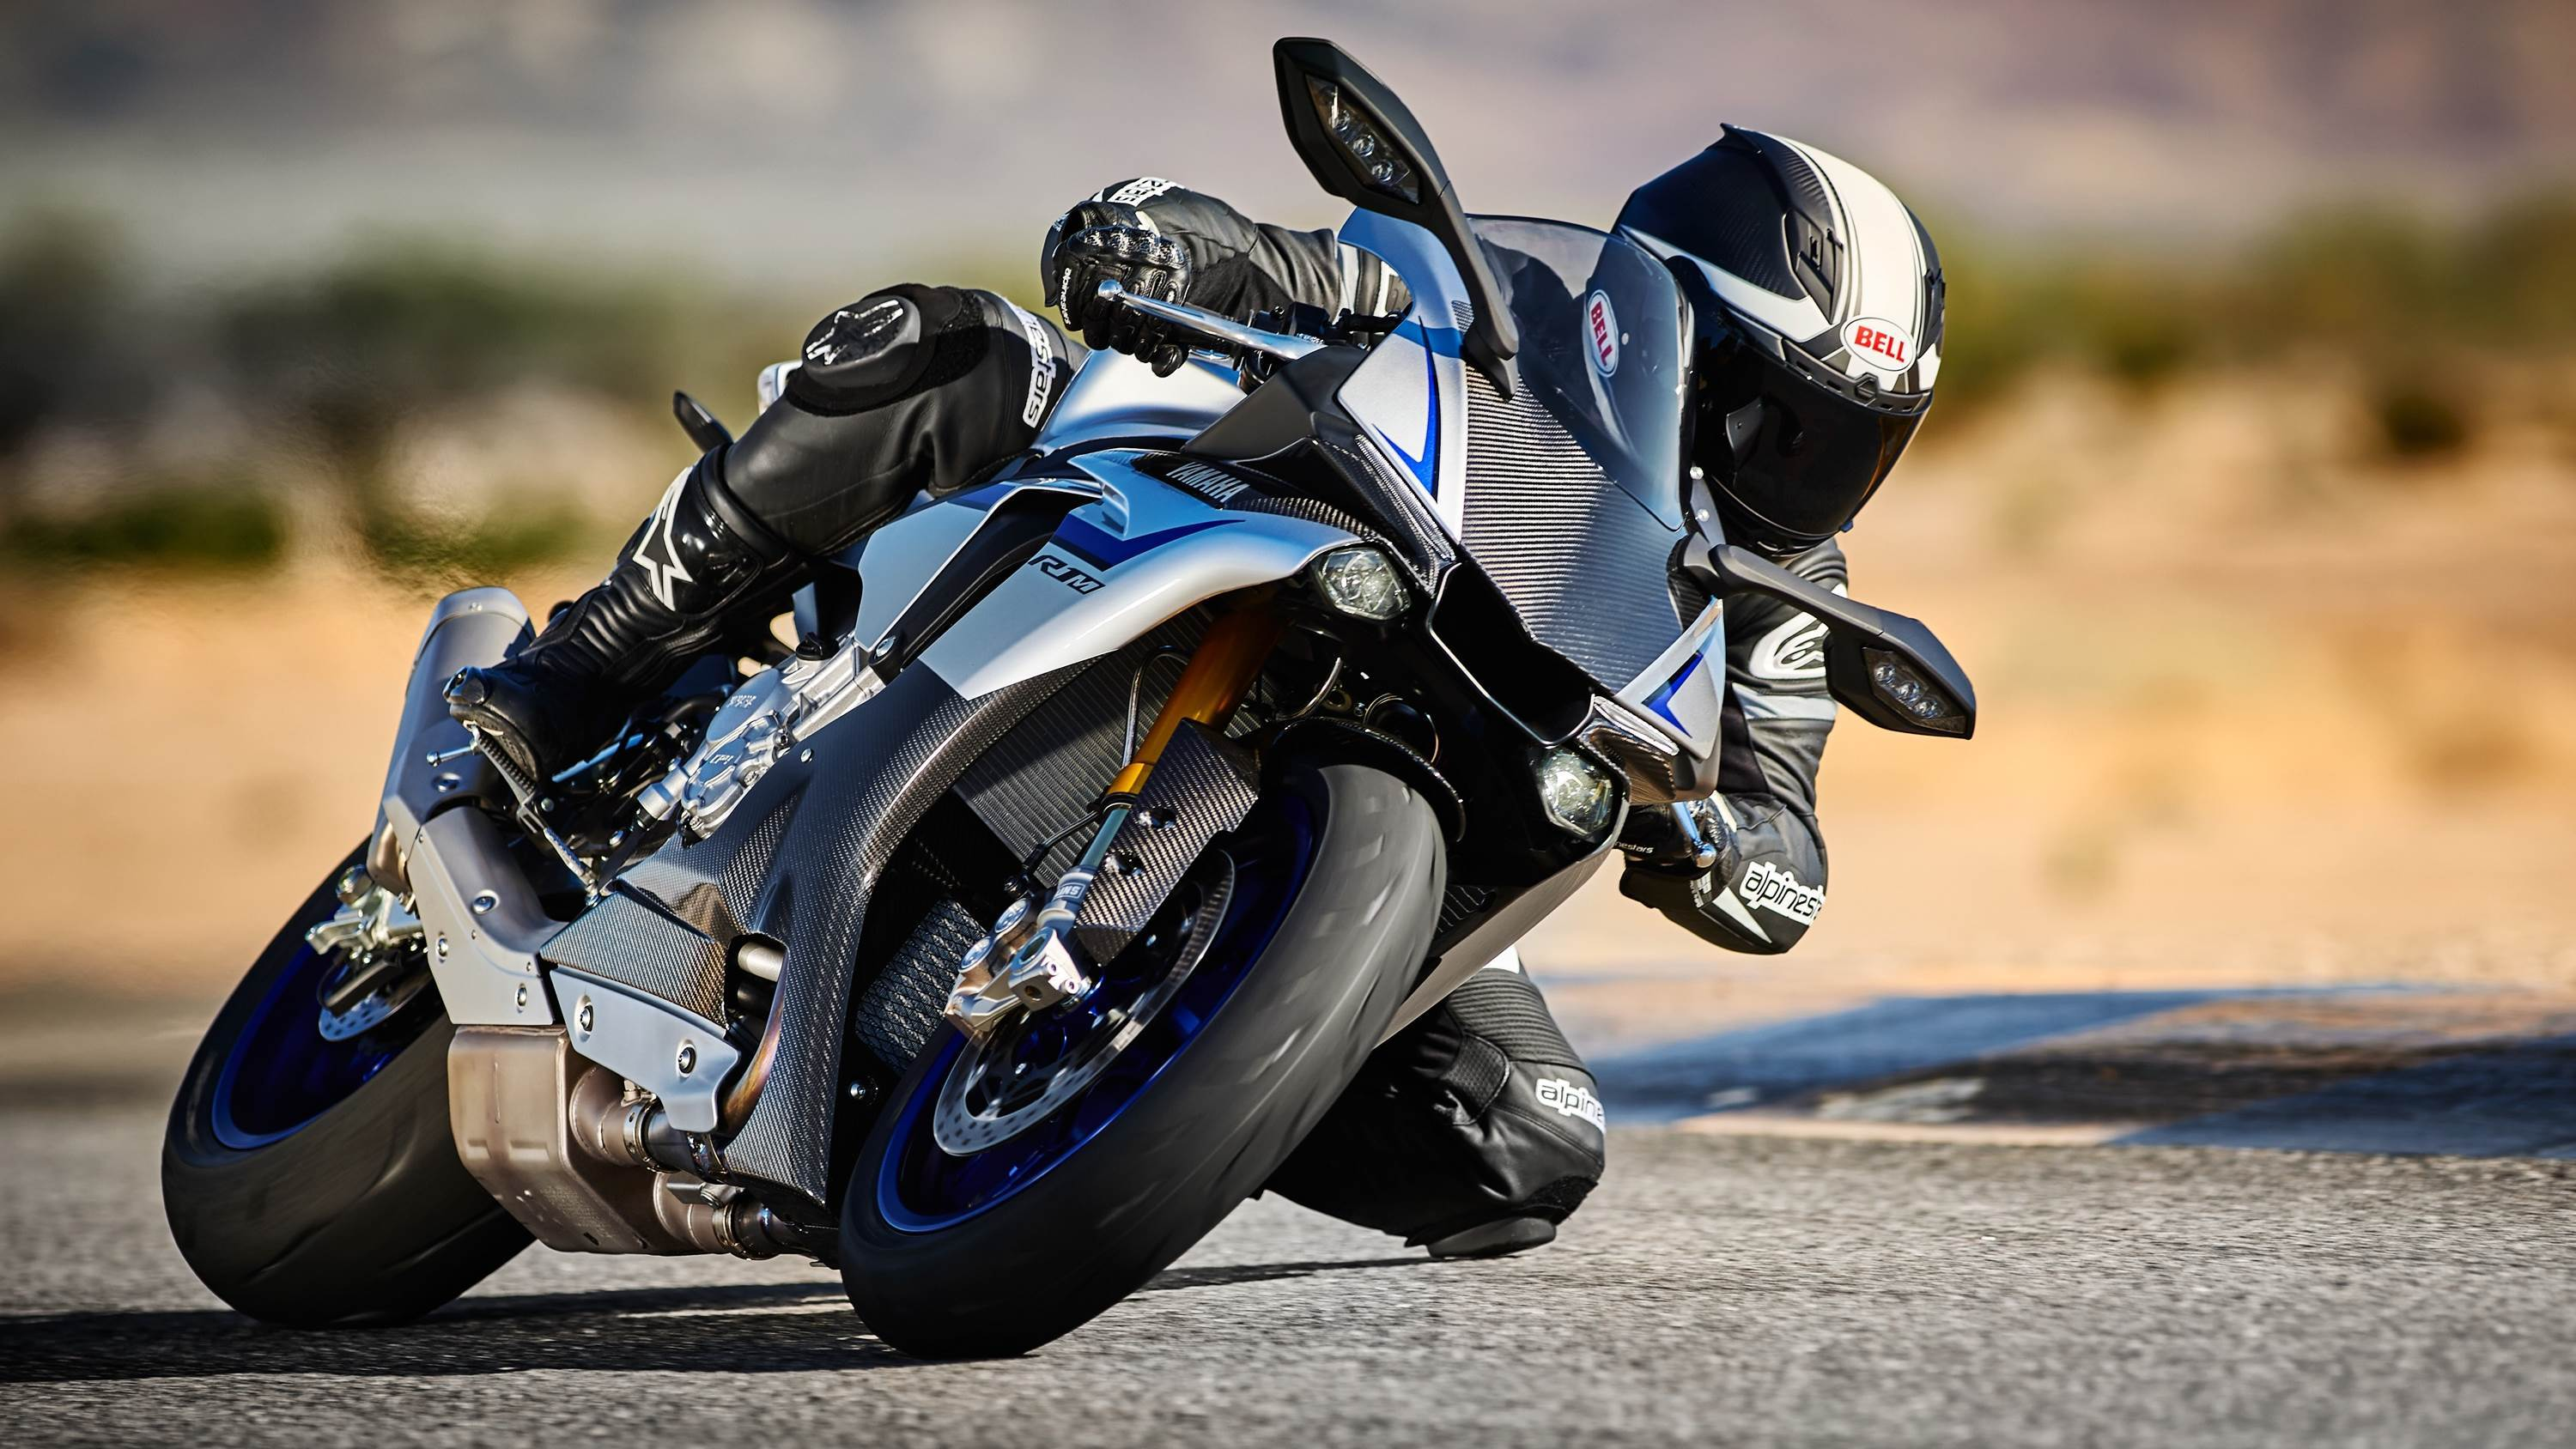 HD wallpapers yamaha r1 wallpaper for iphone 5